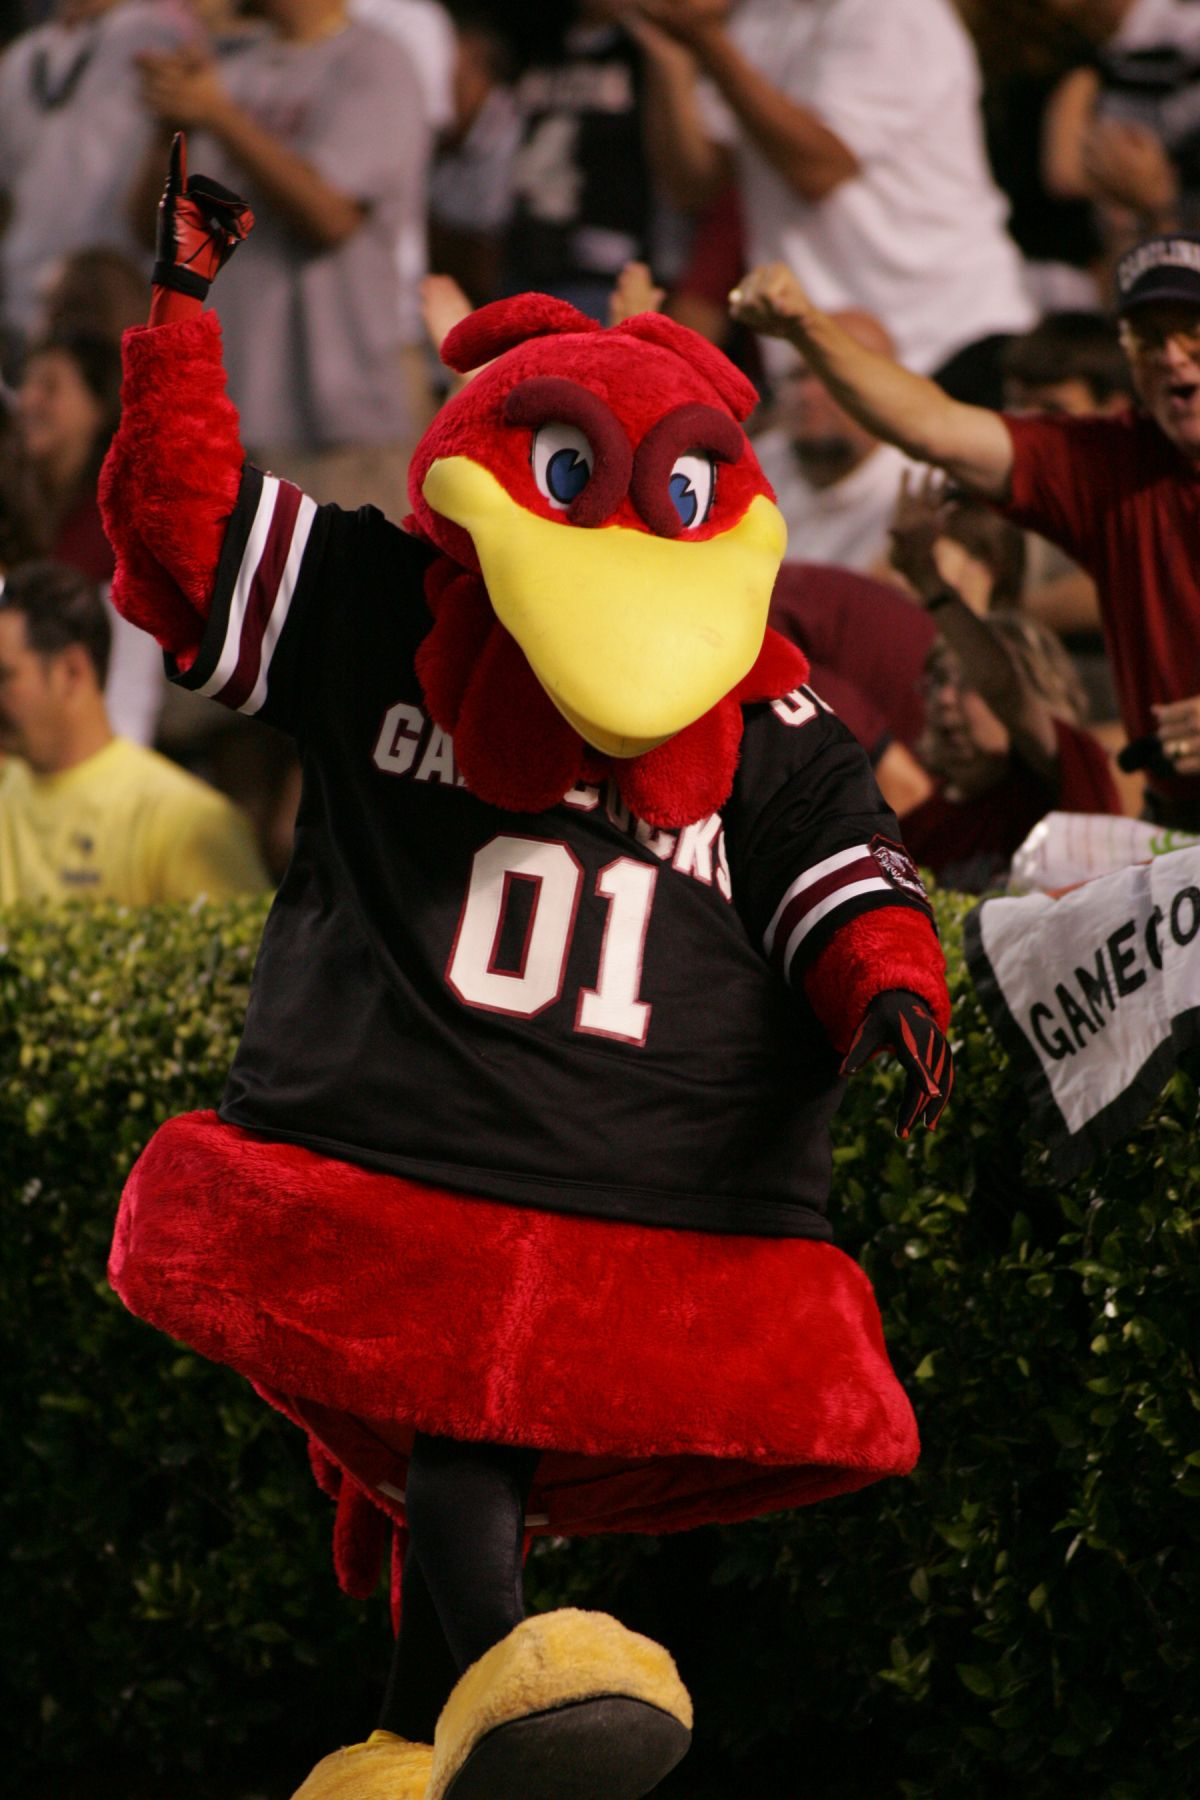 2012 Cocky Storms The Field With His Legendary Sandstorm Dance To Rally Usc Tailgaters And Swimmers Al Gamecocks Football Gamecocks South Carolina Gamecocks